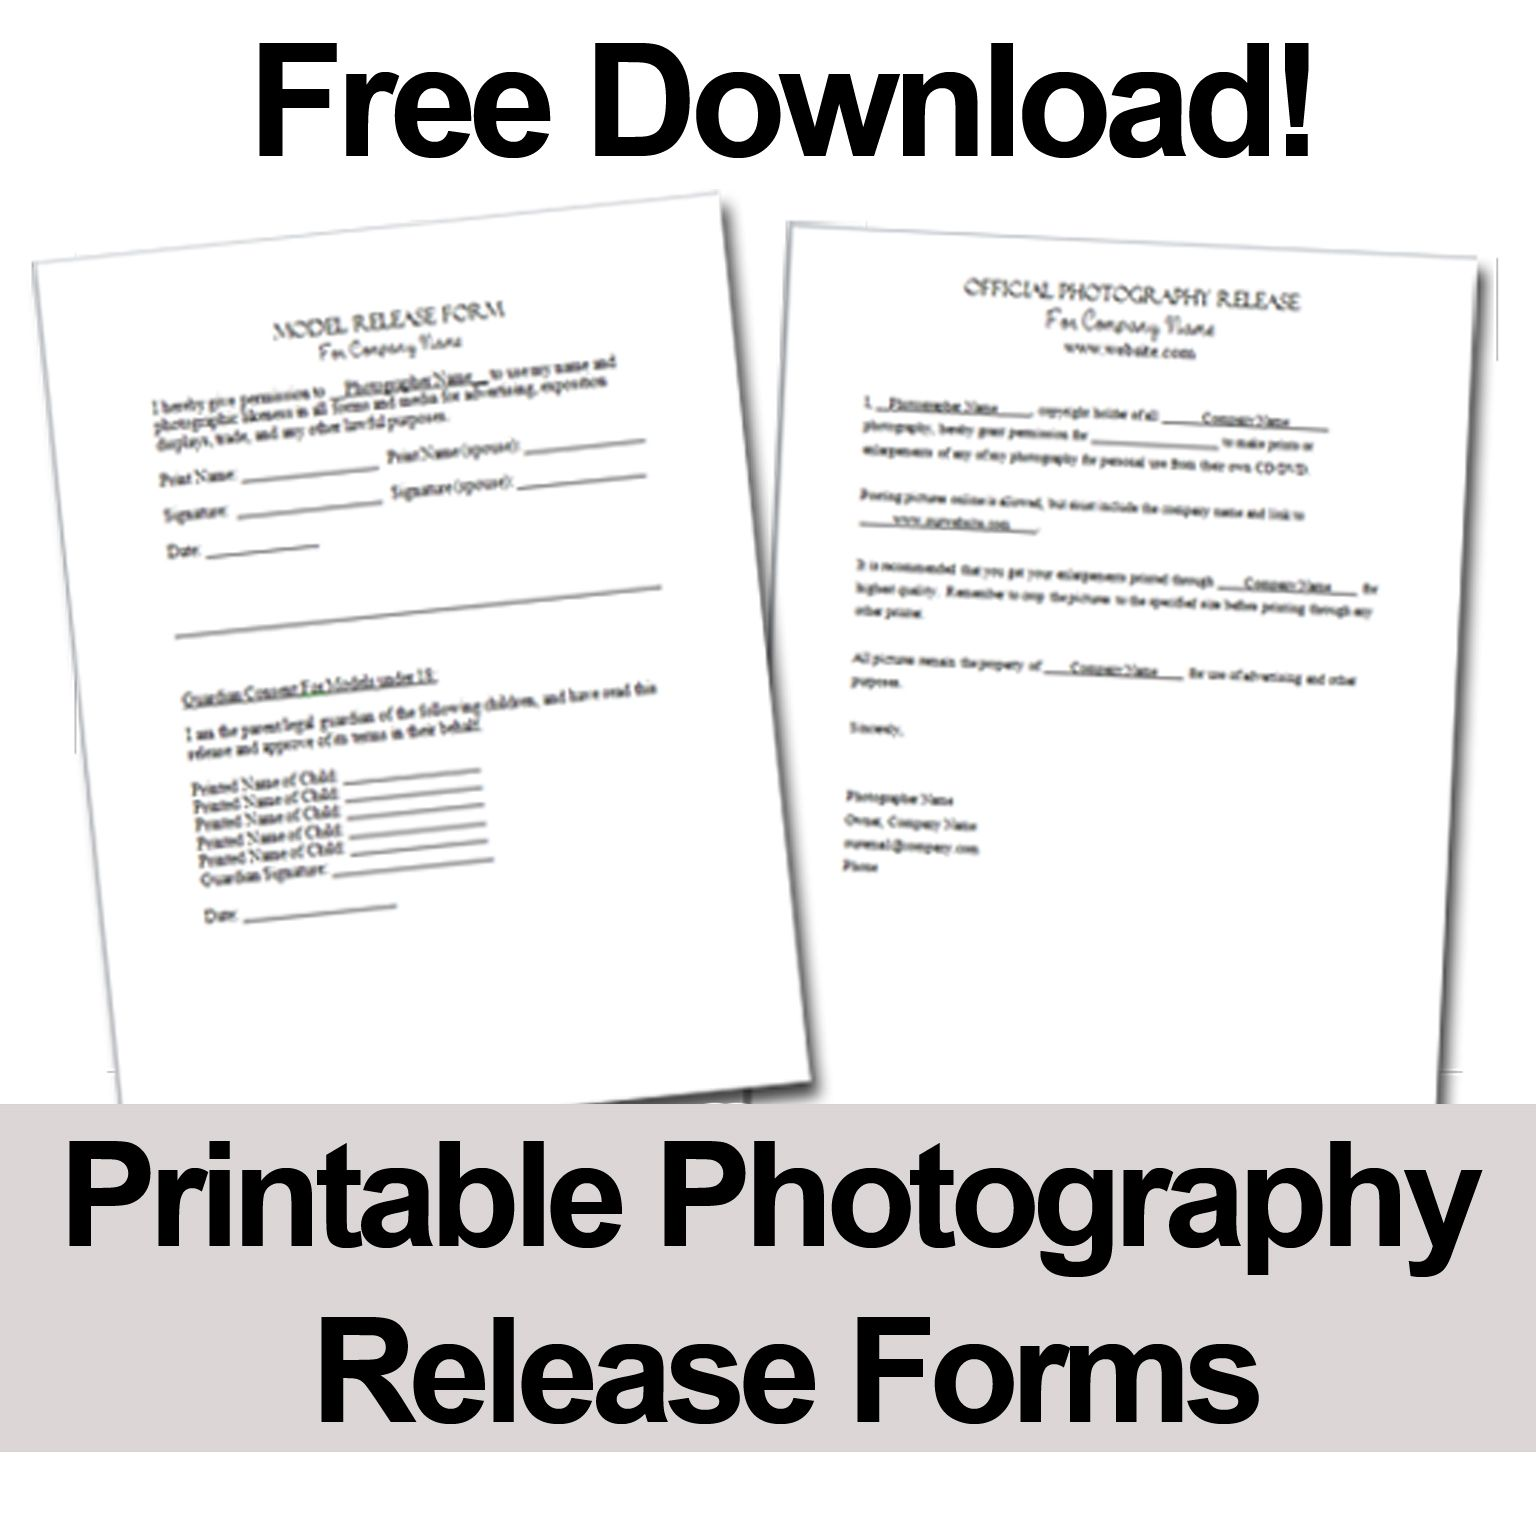 how to send a digital print for download